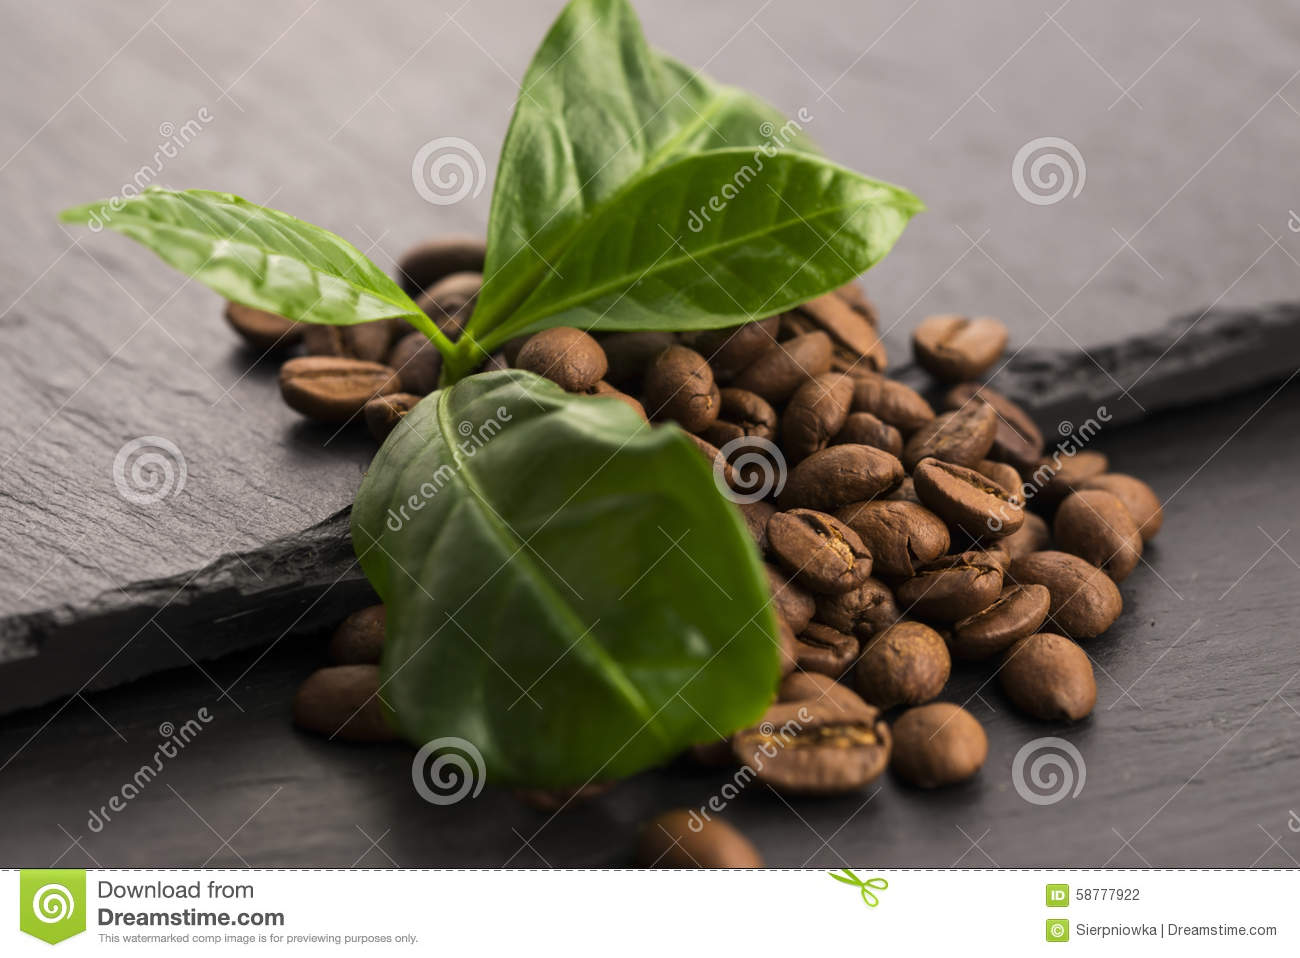 Coffee Grains And Leaves Stock Photo - Image: 58777922 HD Wide Wallpaper for Widescreen